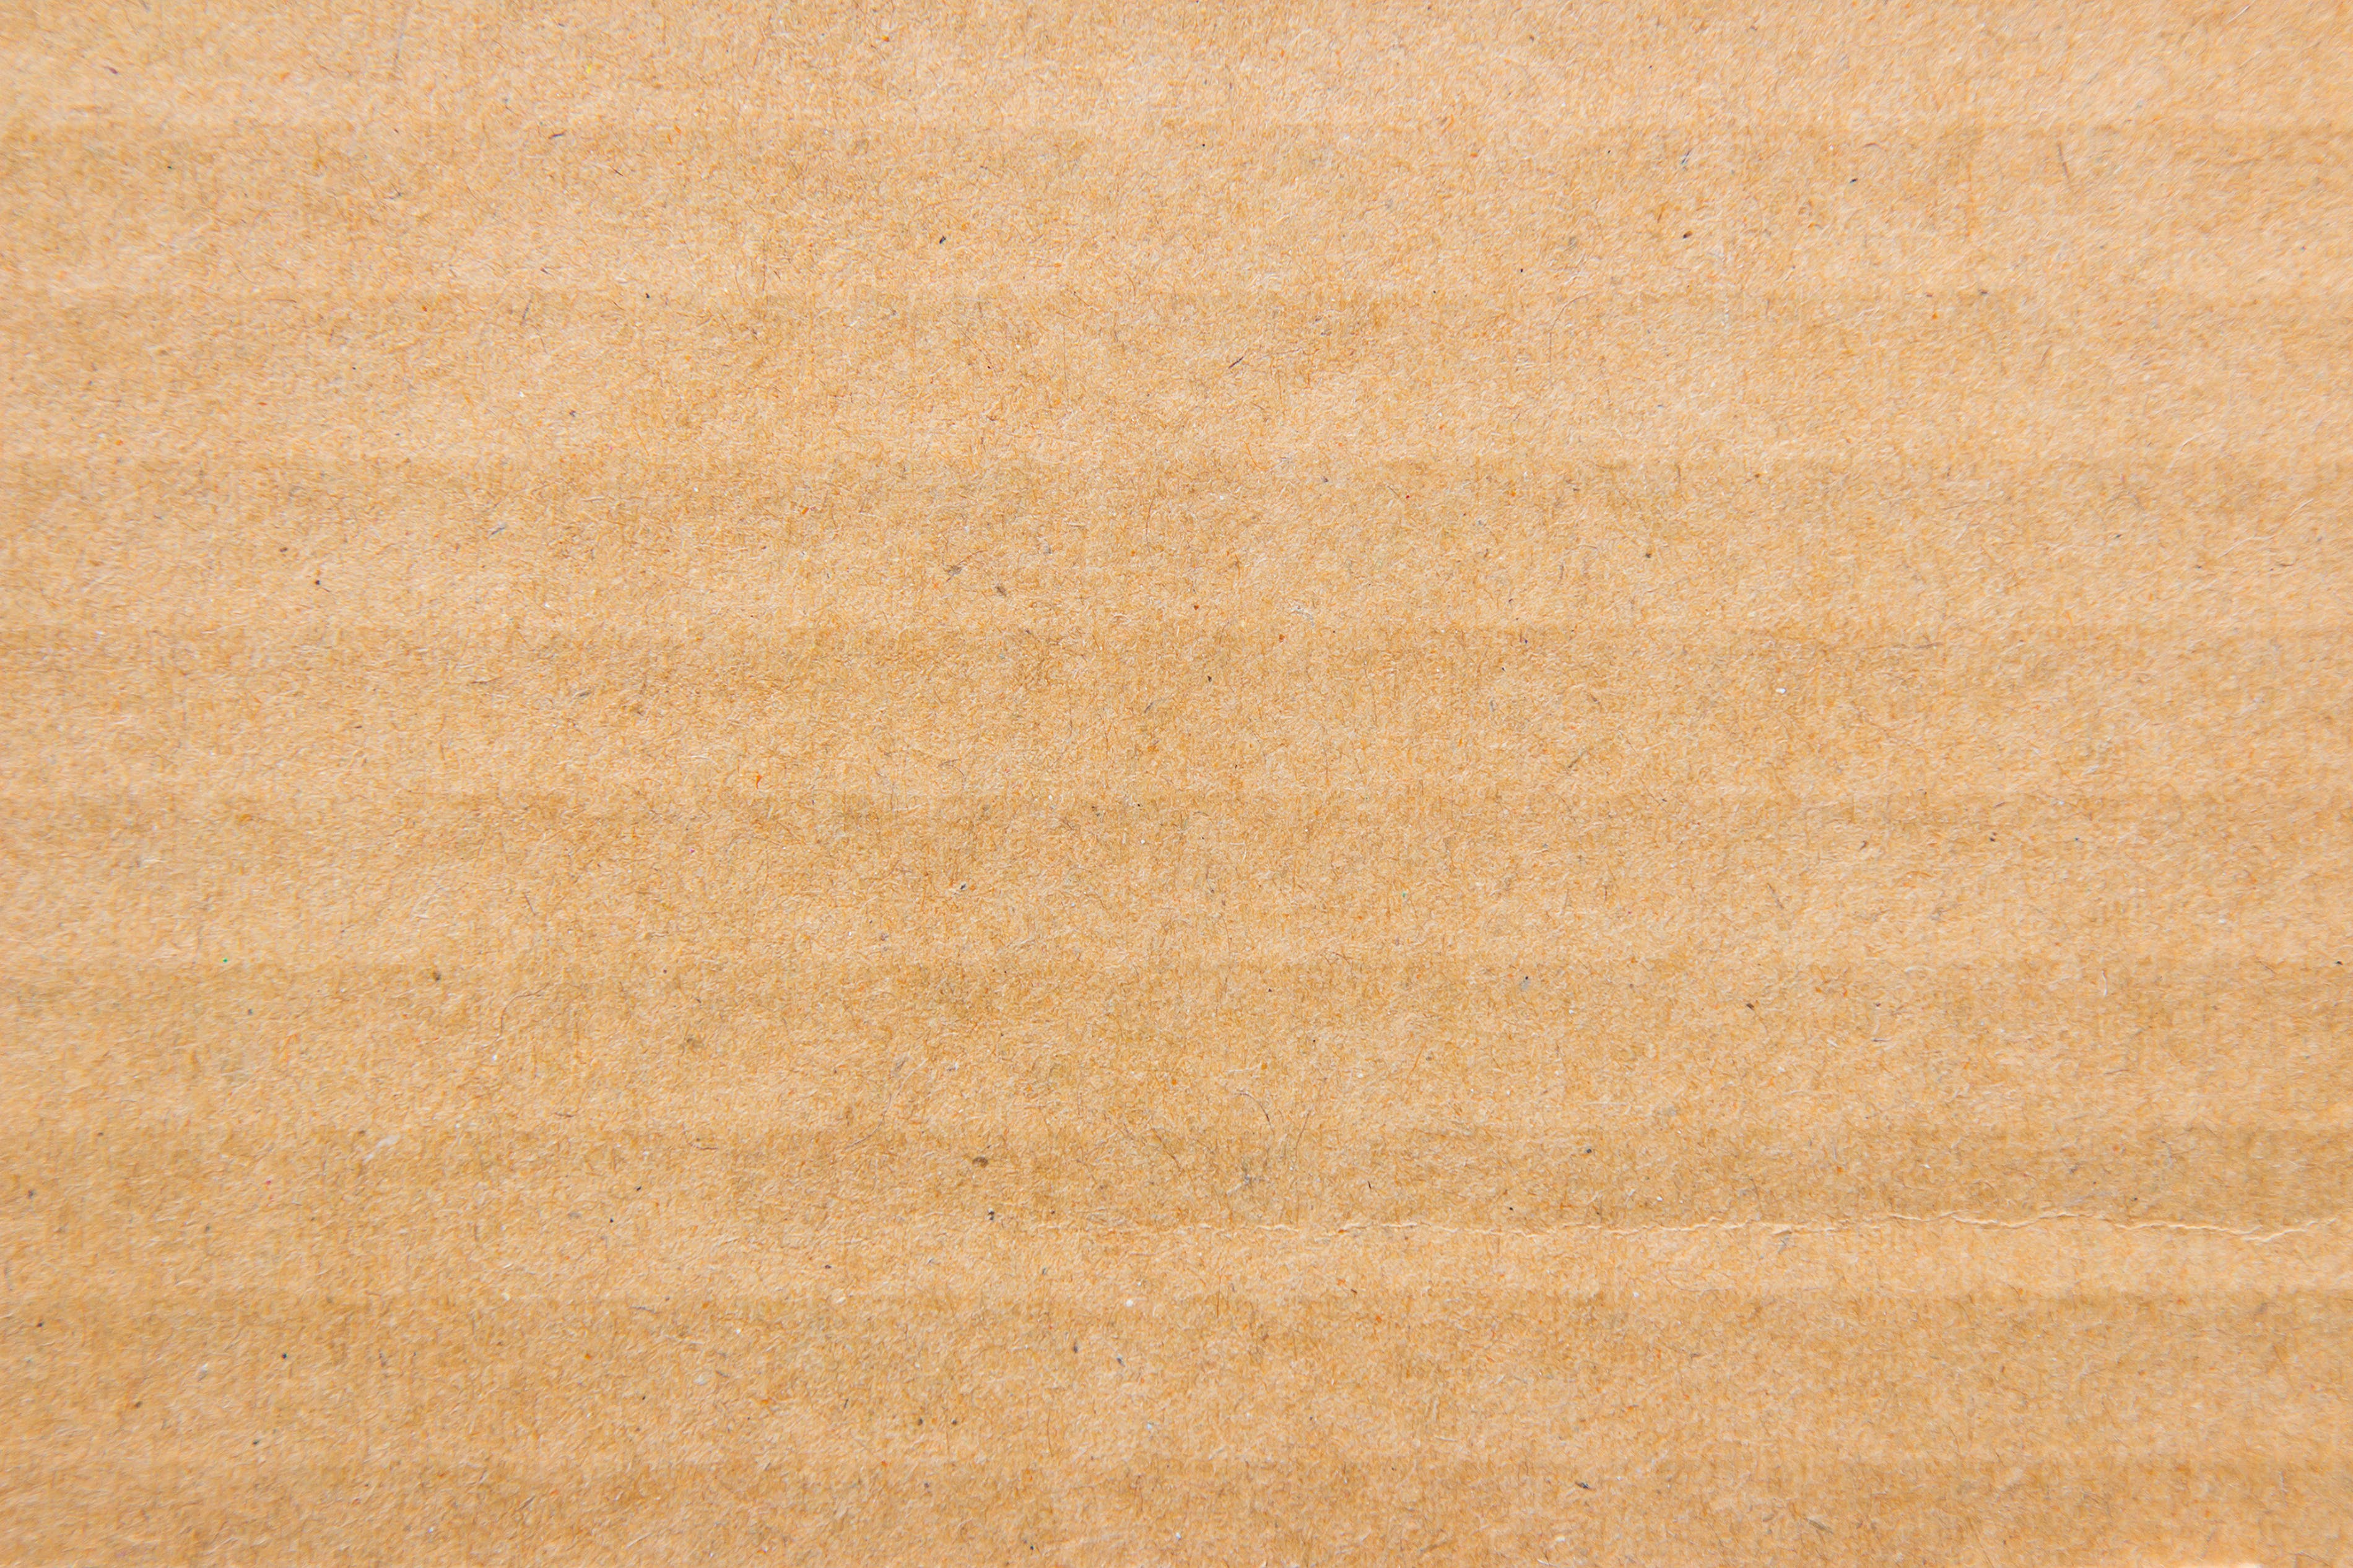 Free stock photo of background, blank, box, brown